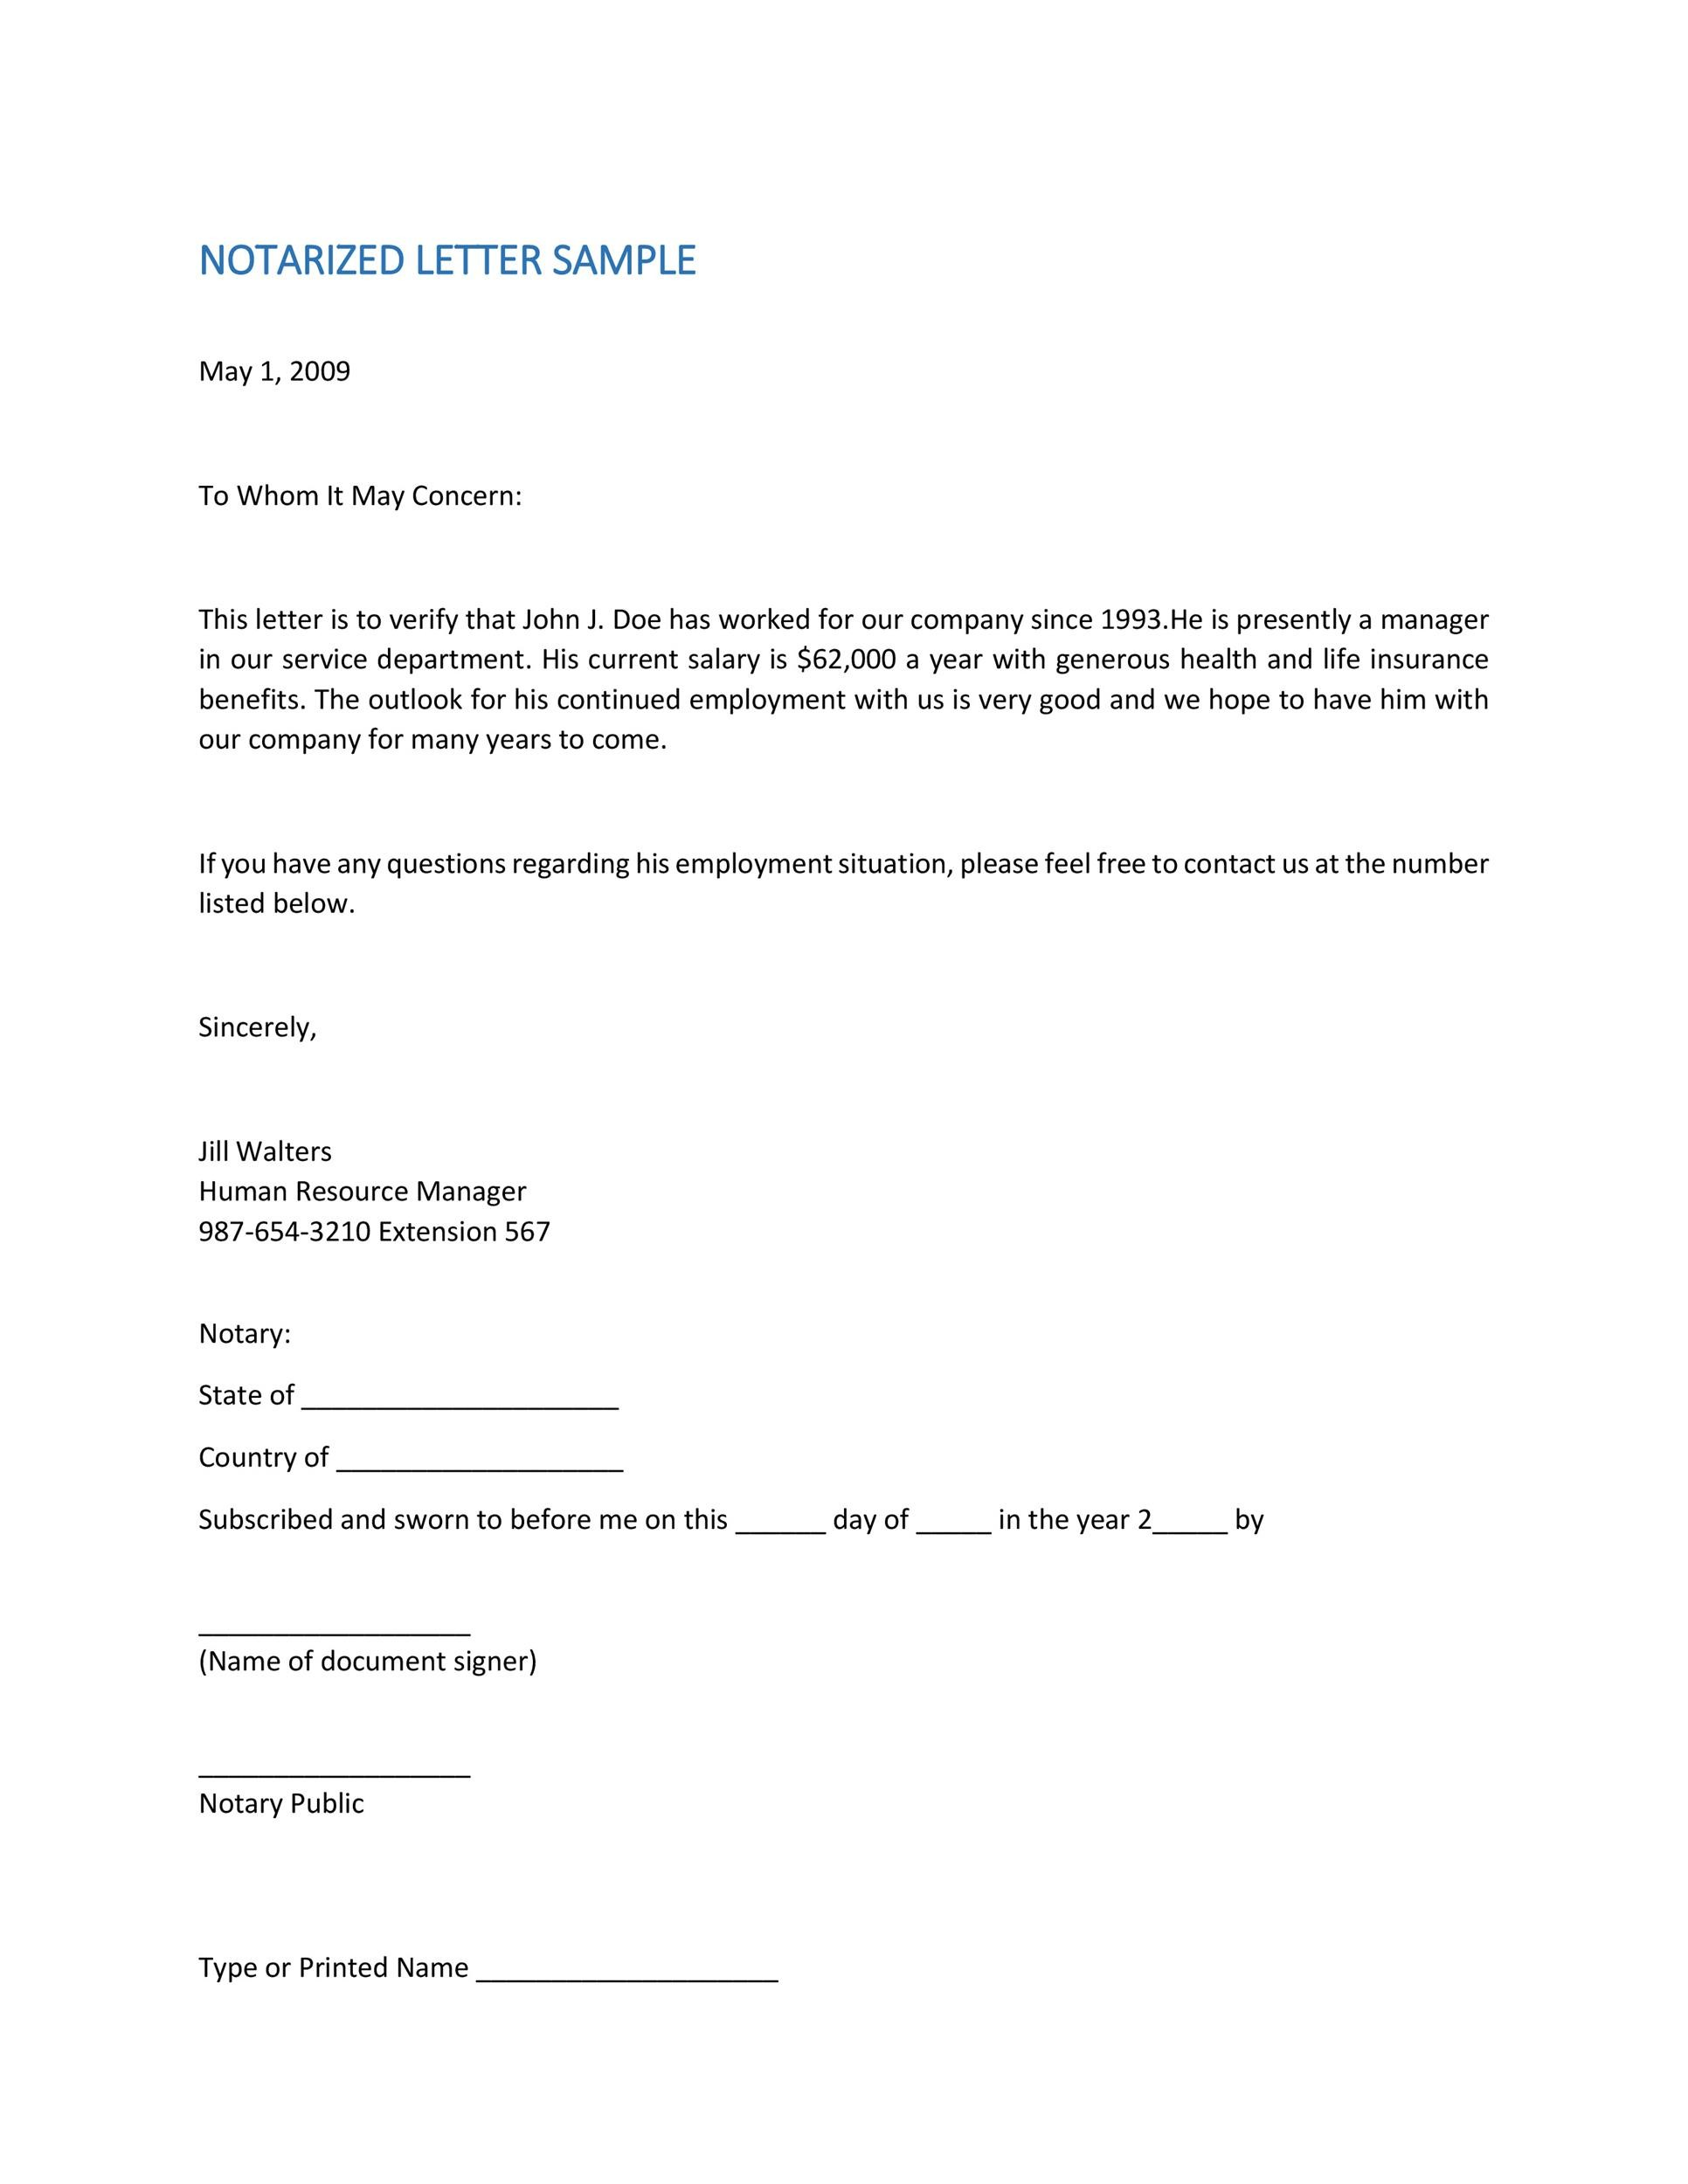 letter template with notary  14+ Professional Notarized Letter Templates ᐅ Template Lab